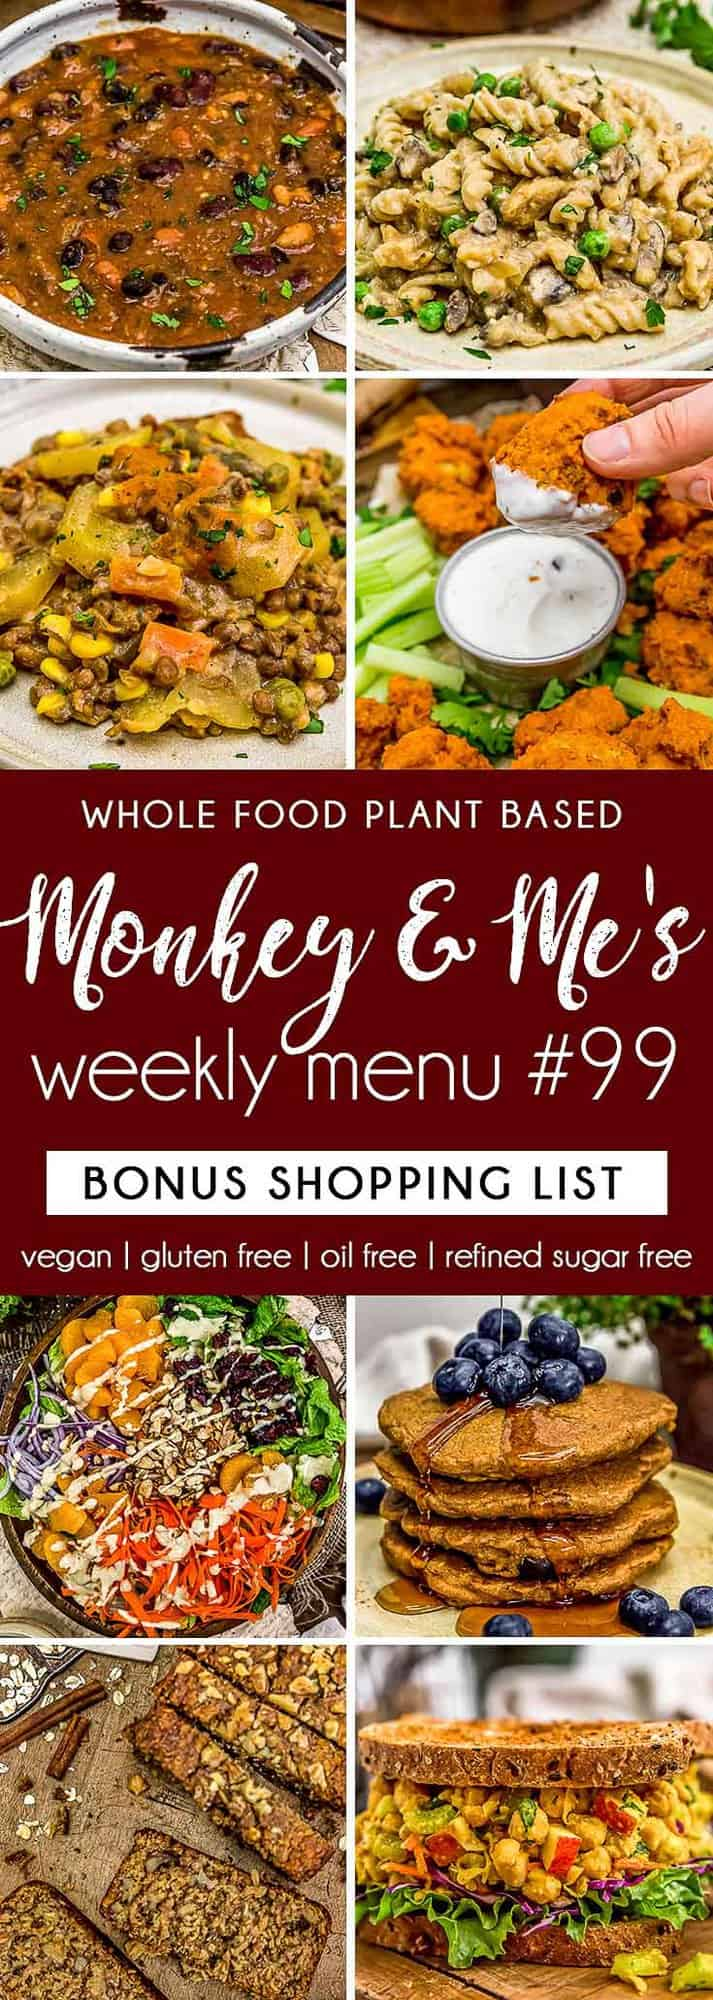 Monkey and Me's Menu 99 featuring 8 recipes